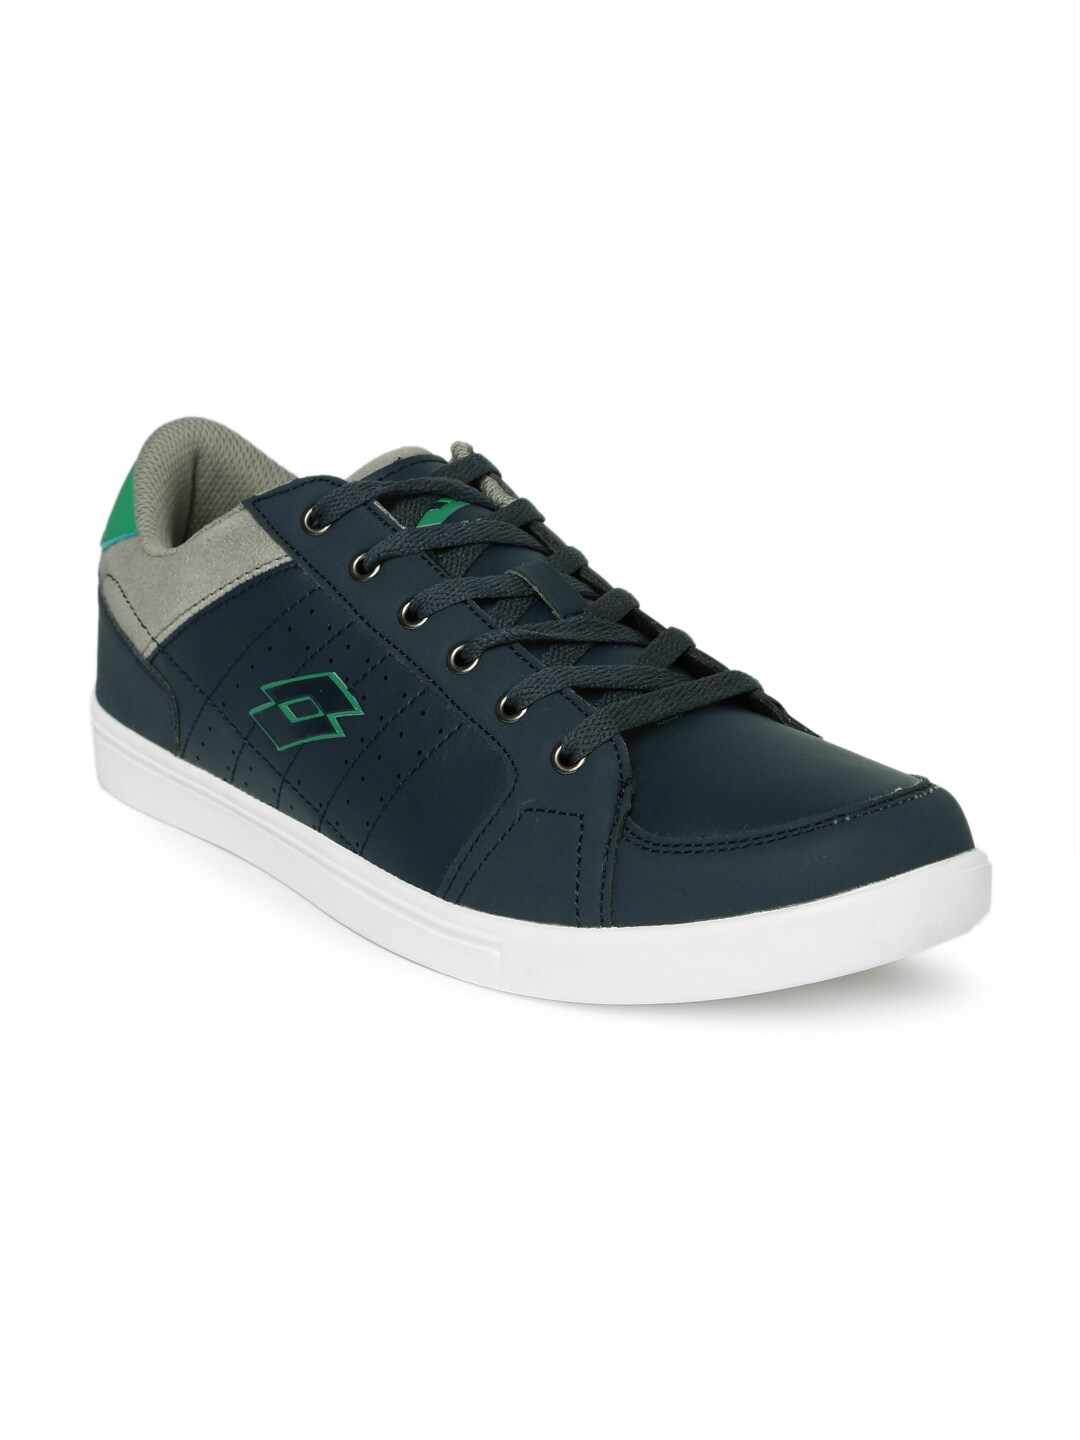 Lotto Flipside Caps Casual Shoes - Buy Lotto Flipside Caps Casual Shoes  online in India